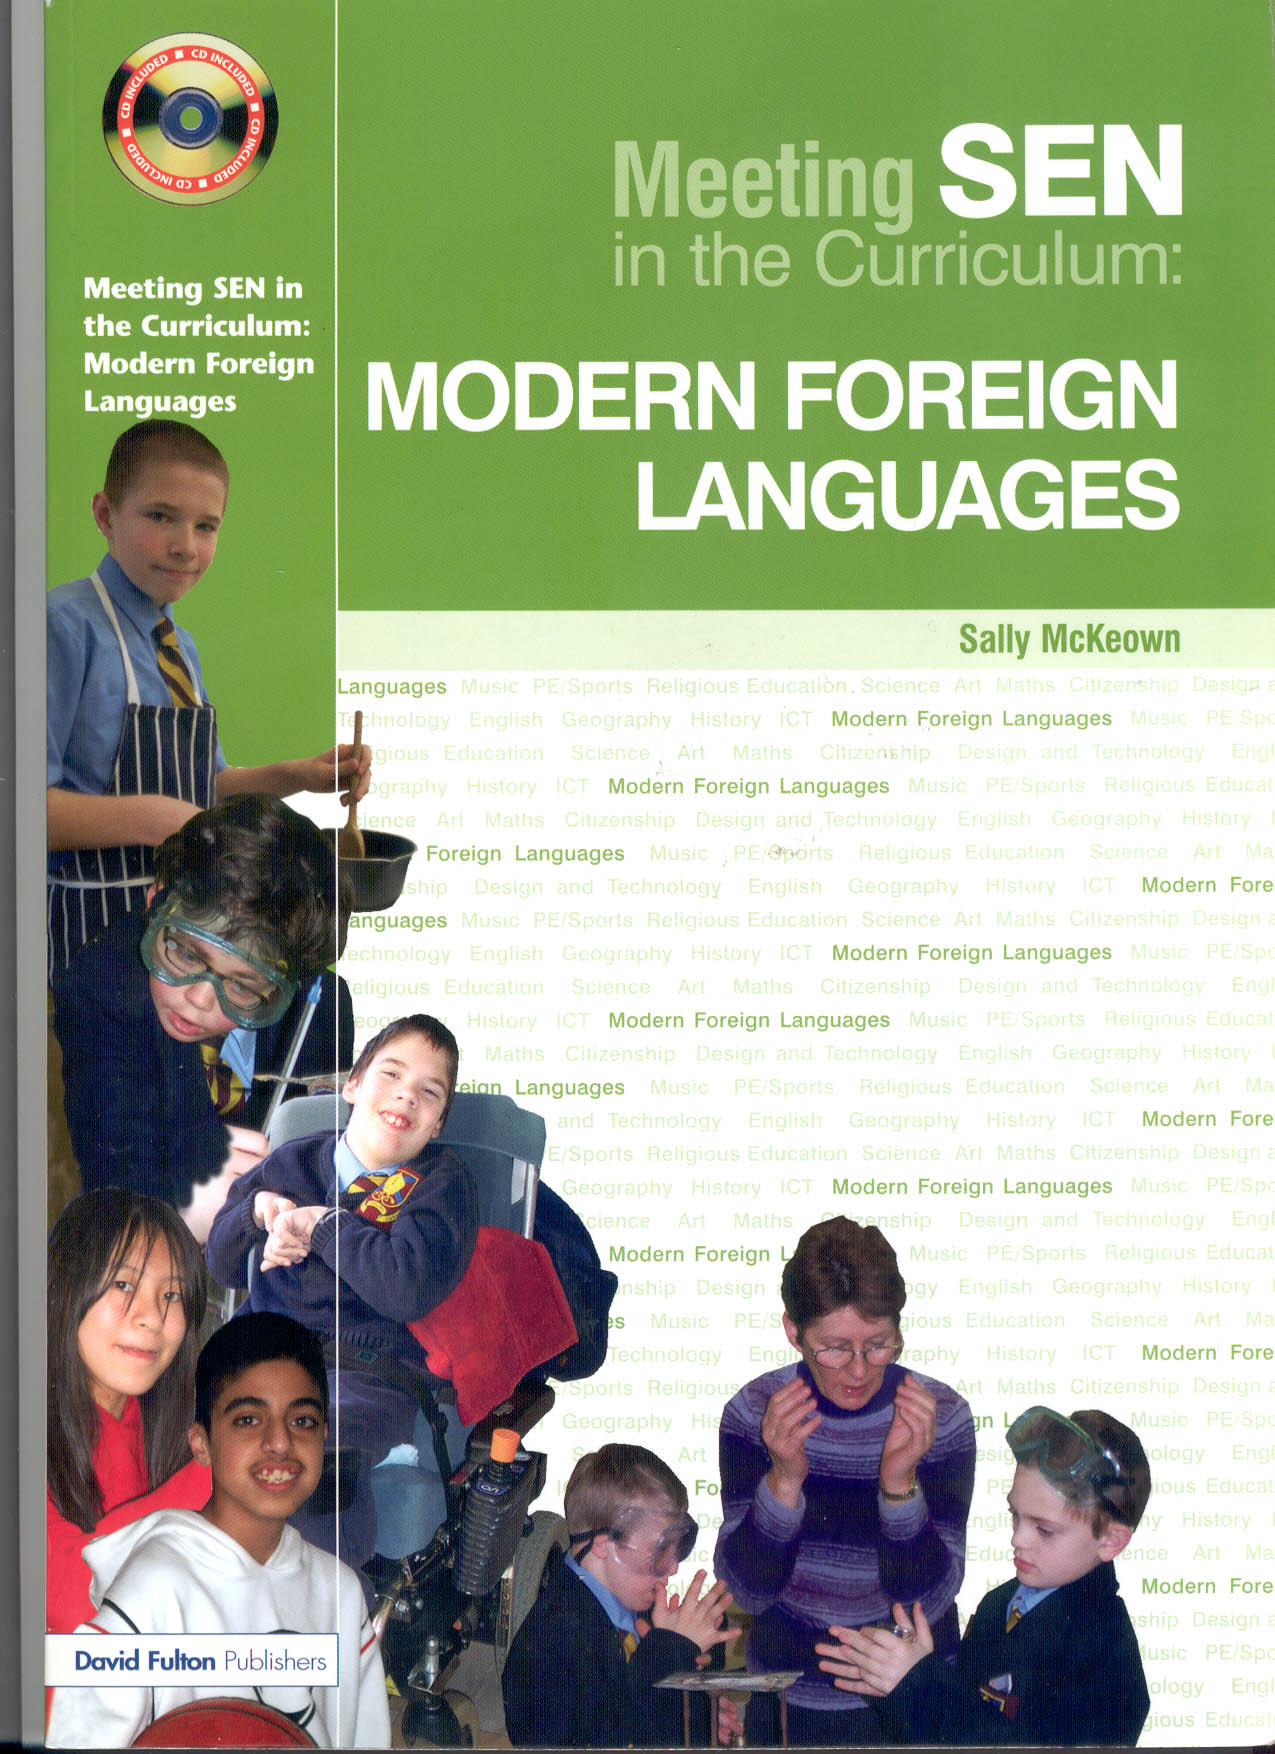 Meeting SEN in the curriculum: Modern Foreign Languages- click for more info